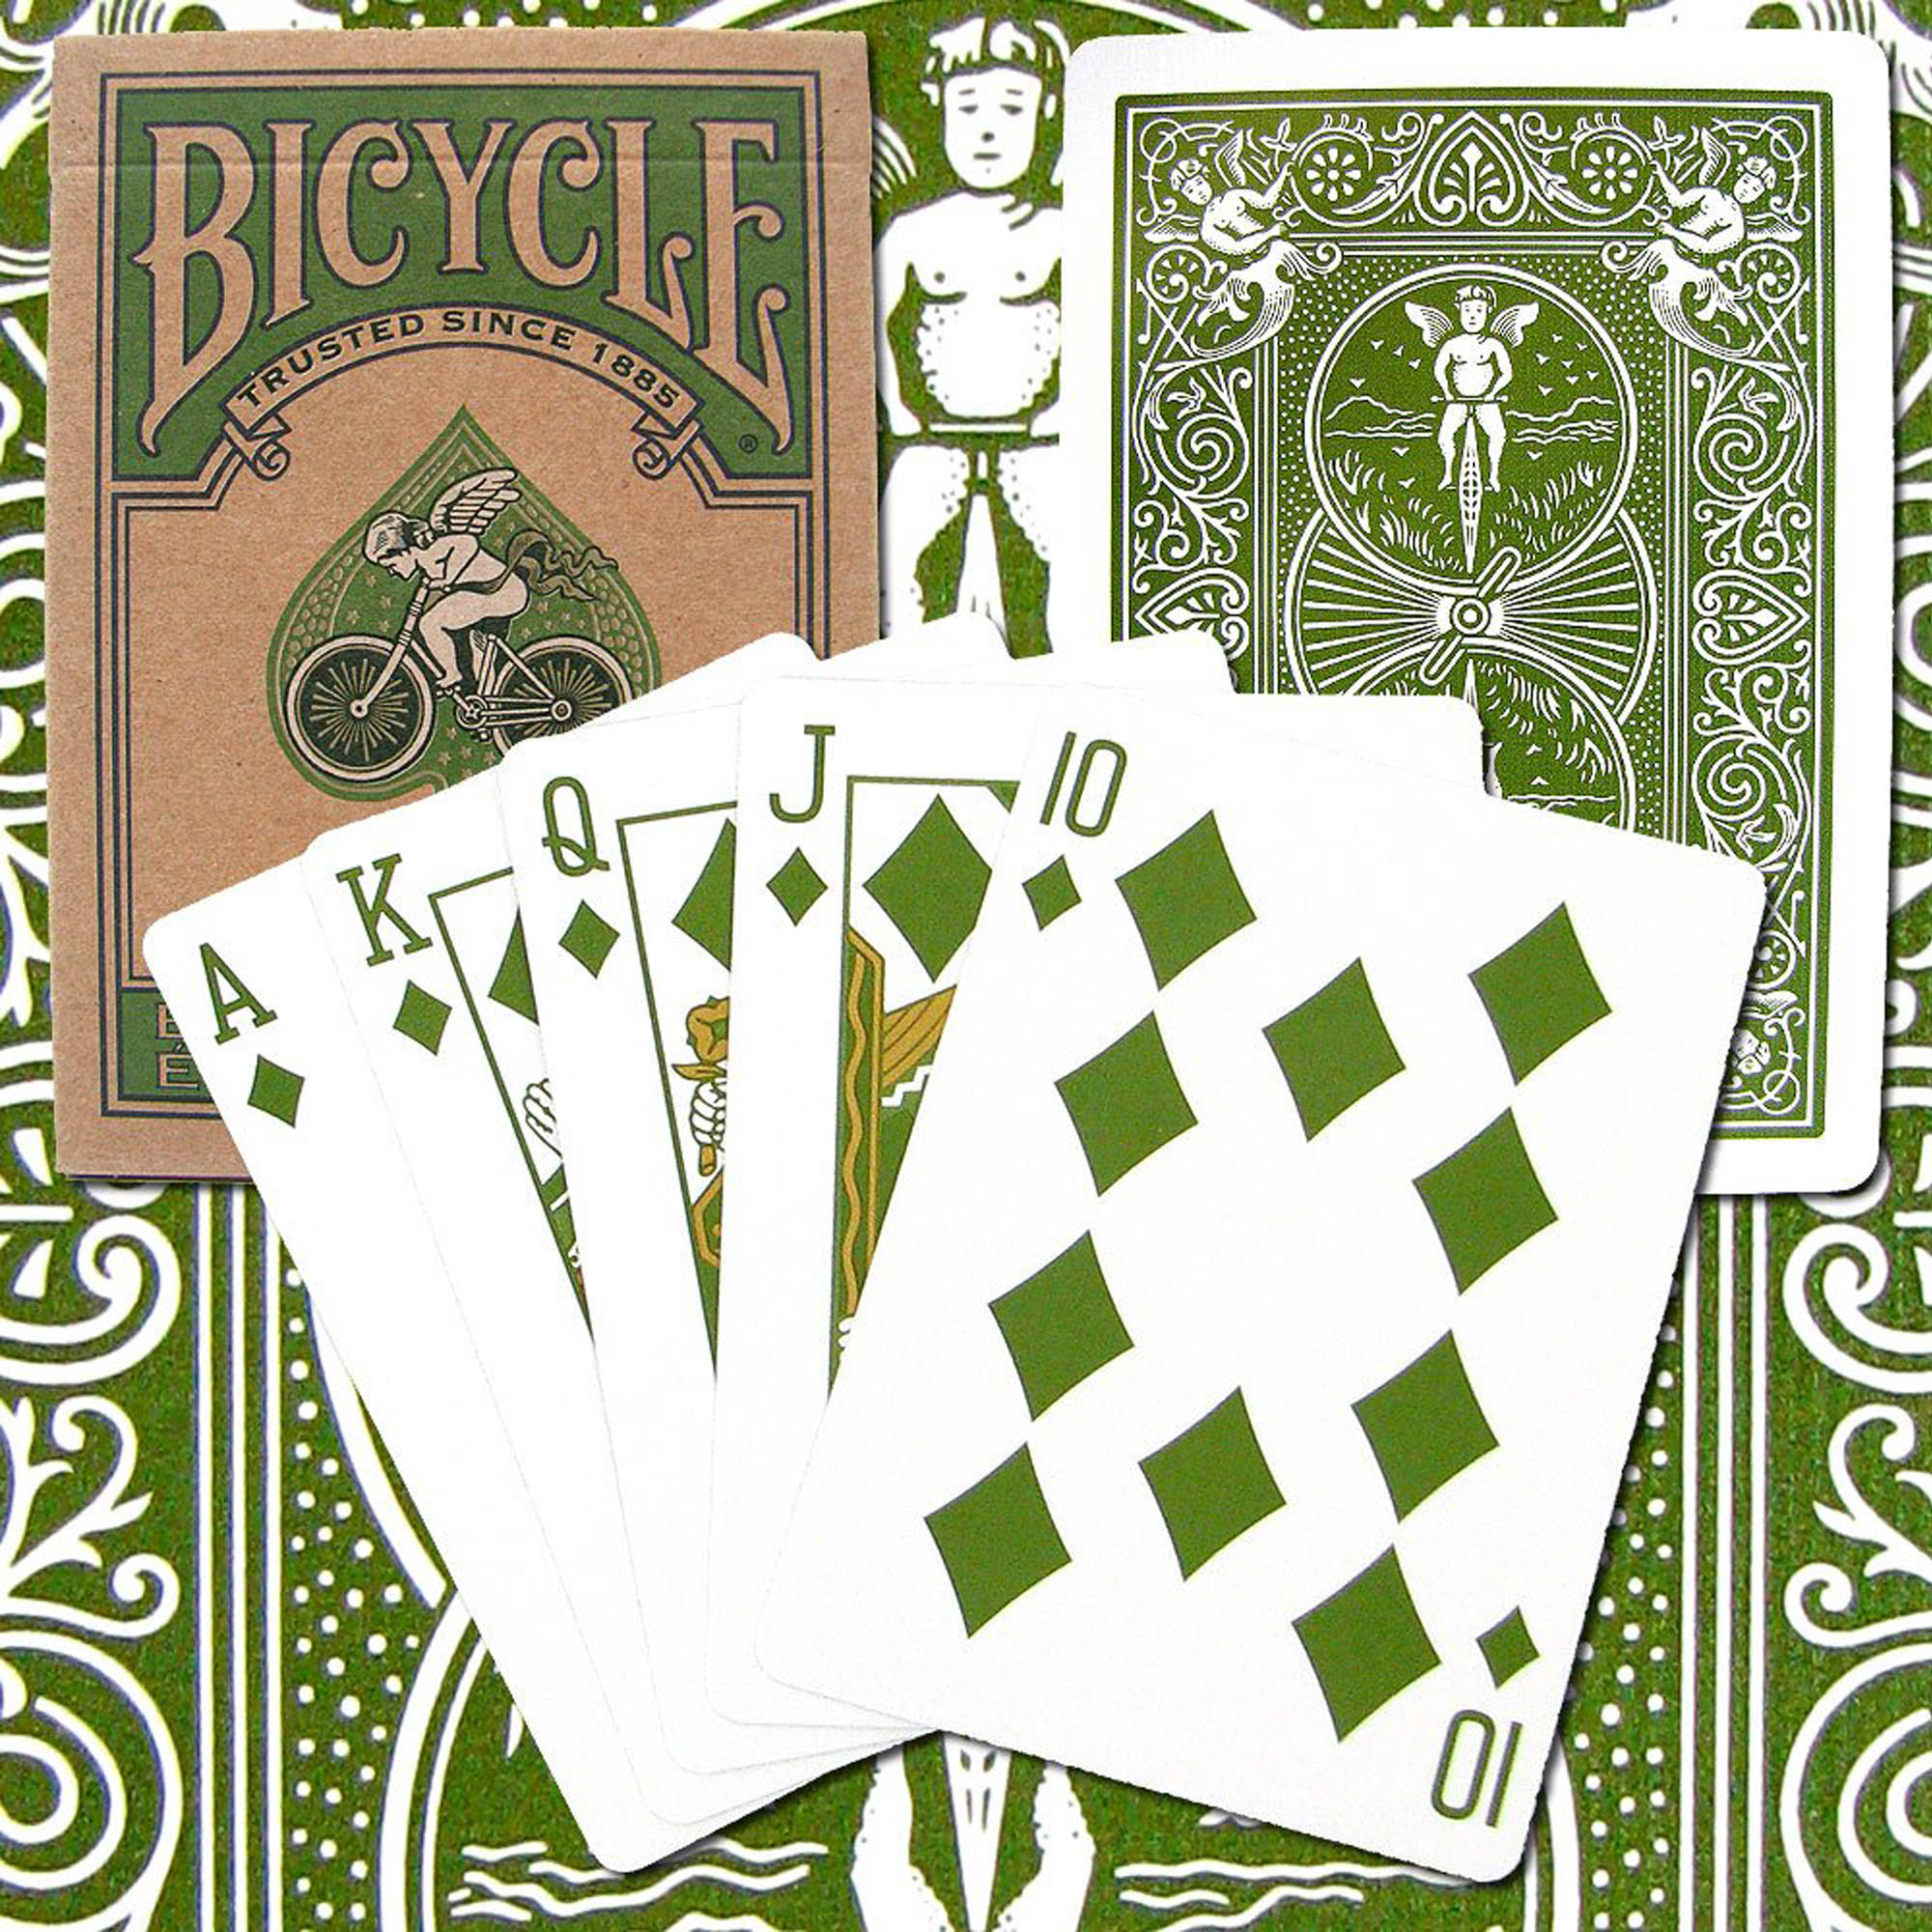 Bicycle Poker Playing Cards, Eco Edition